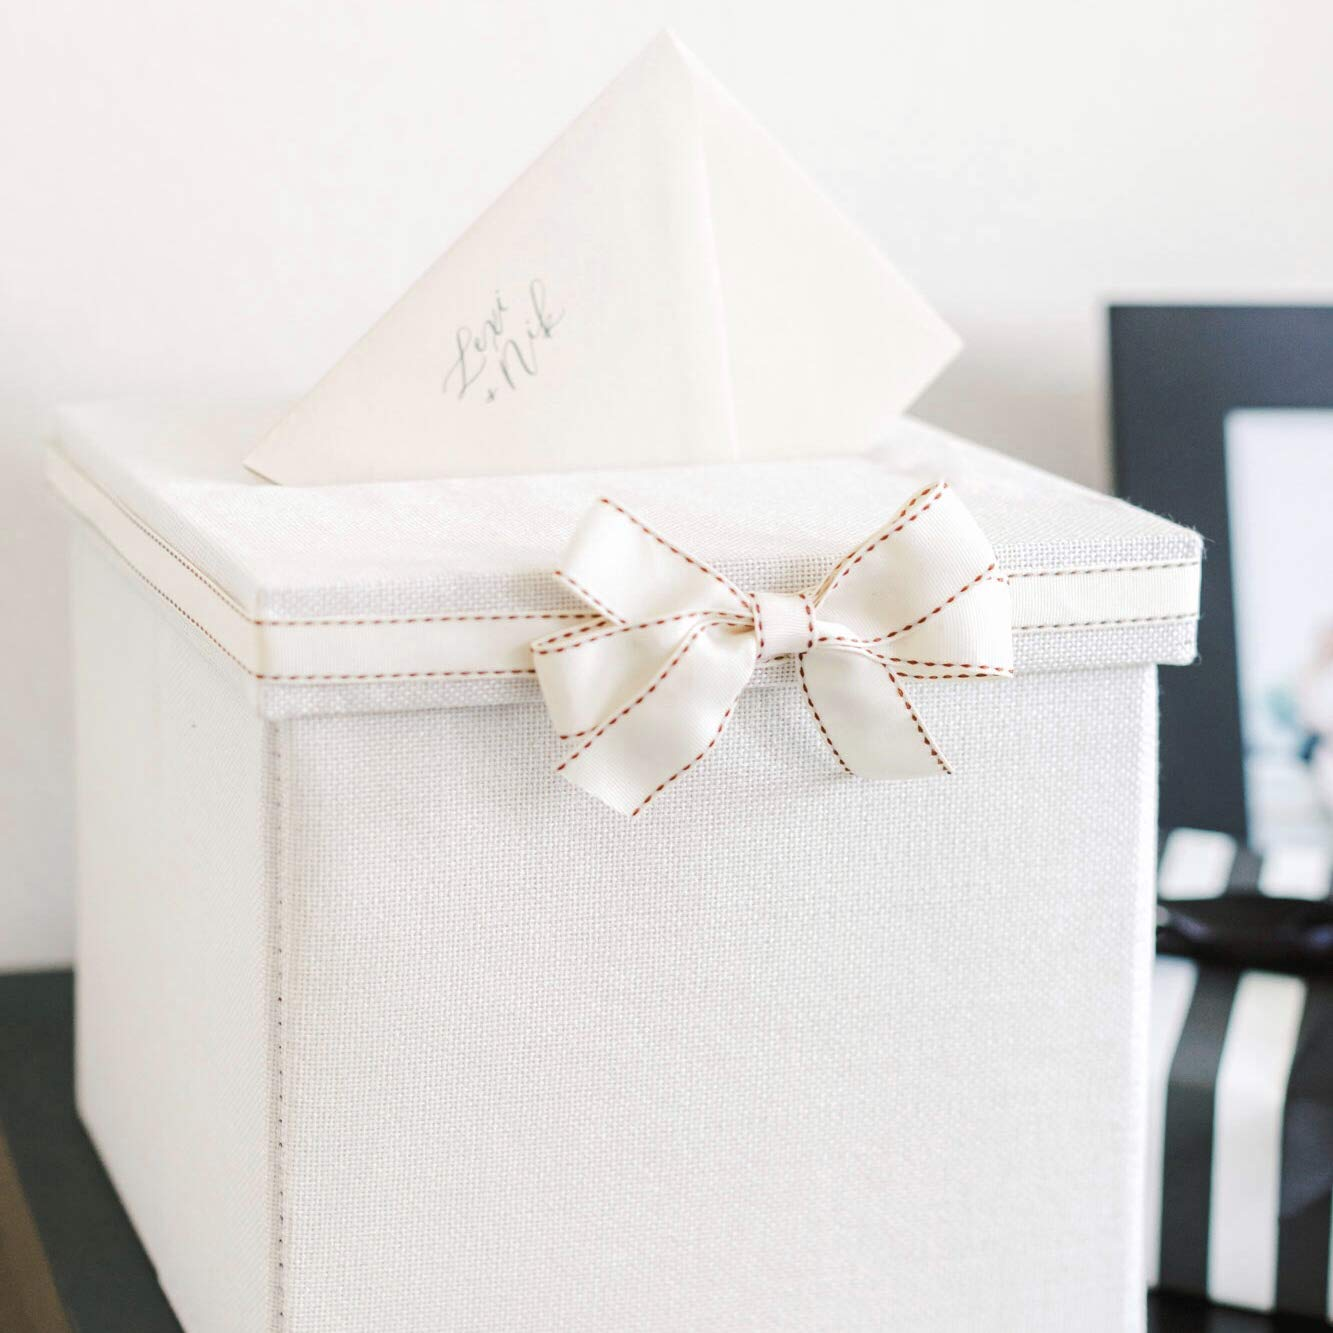 FLUYTCO Wedding Card Envelope Box - Linen Fabric /& Removable Ribbon ...